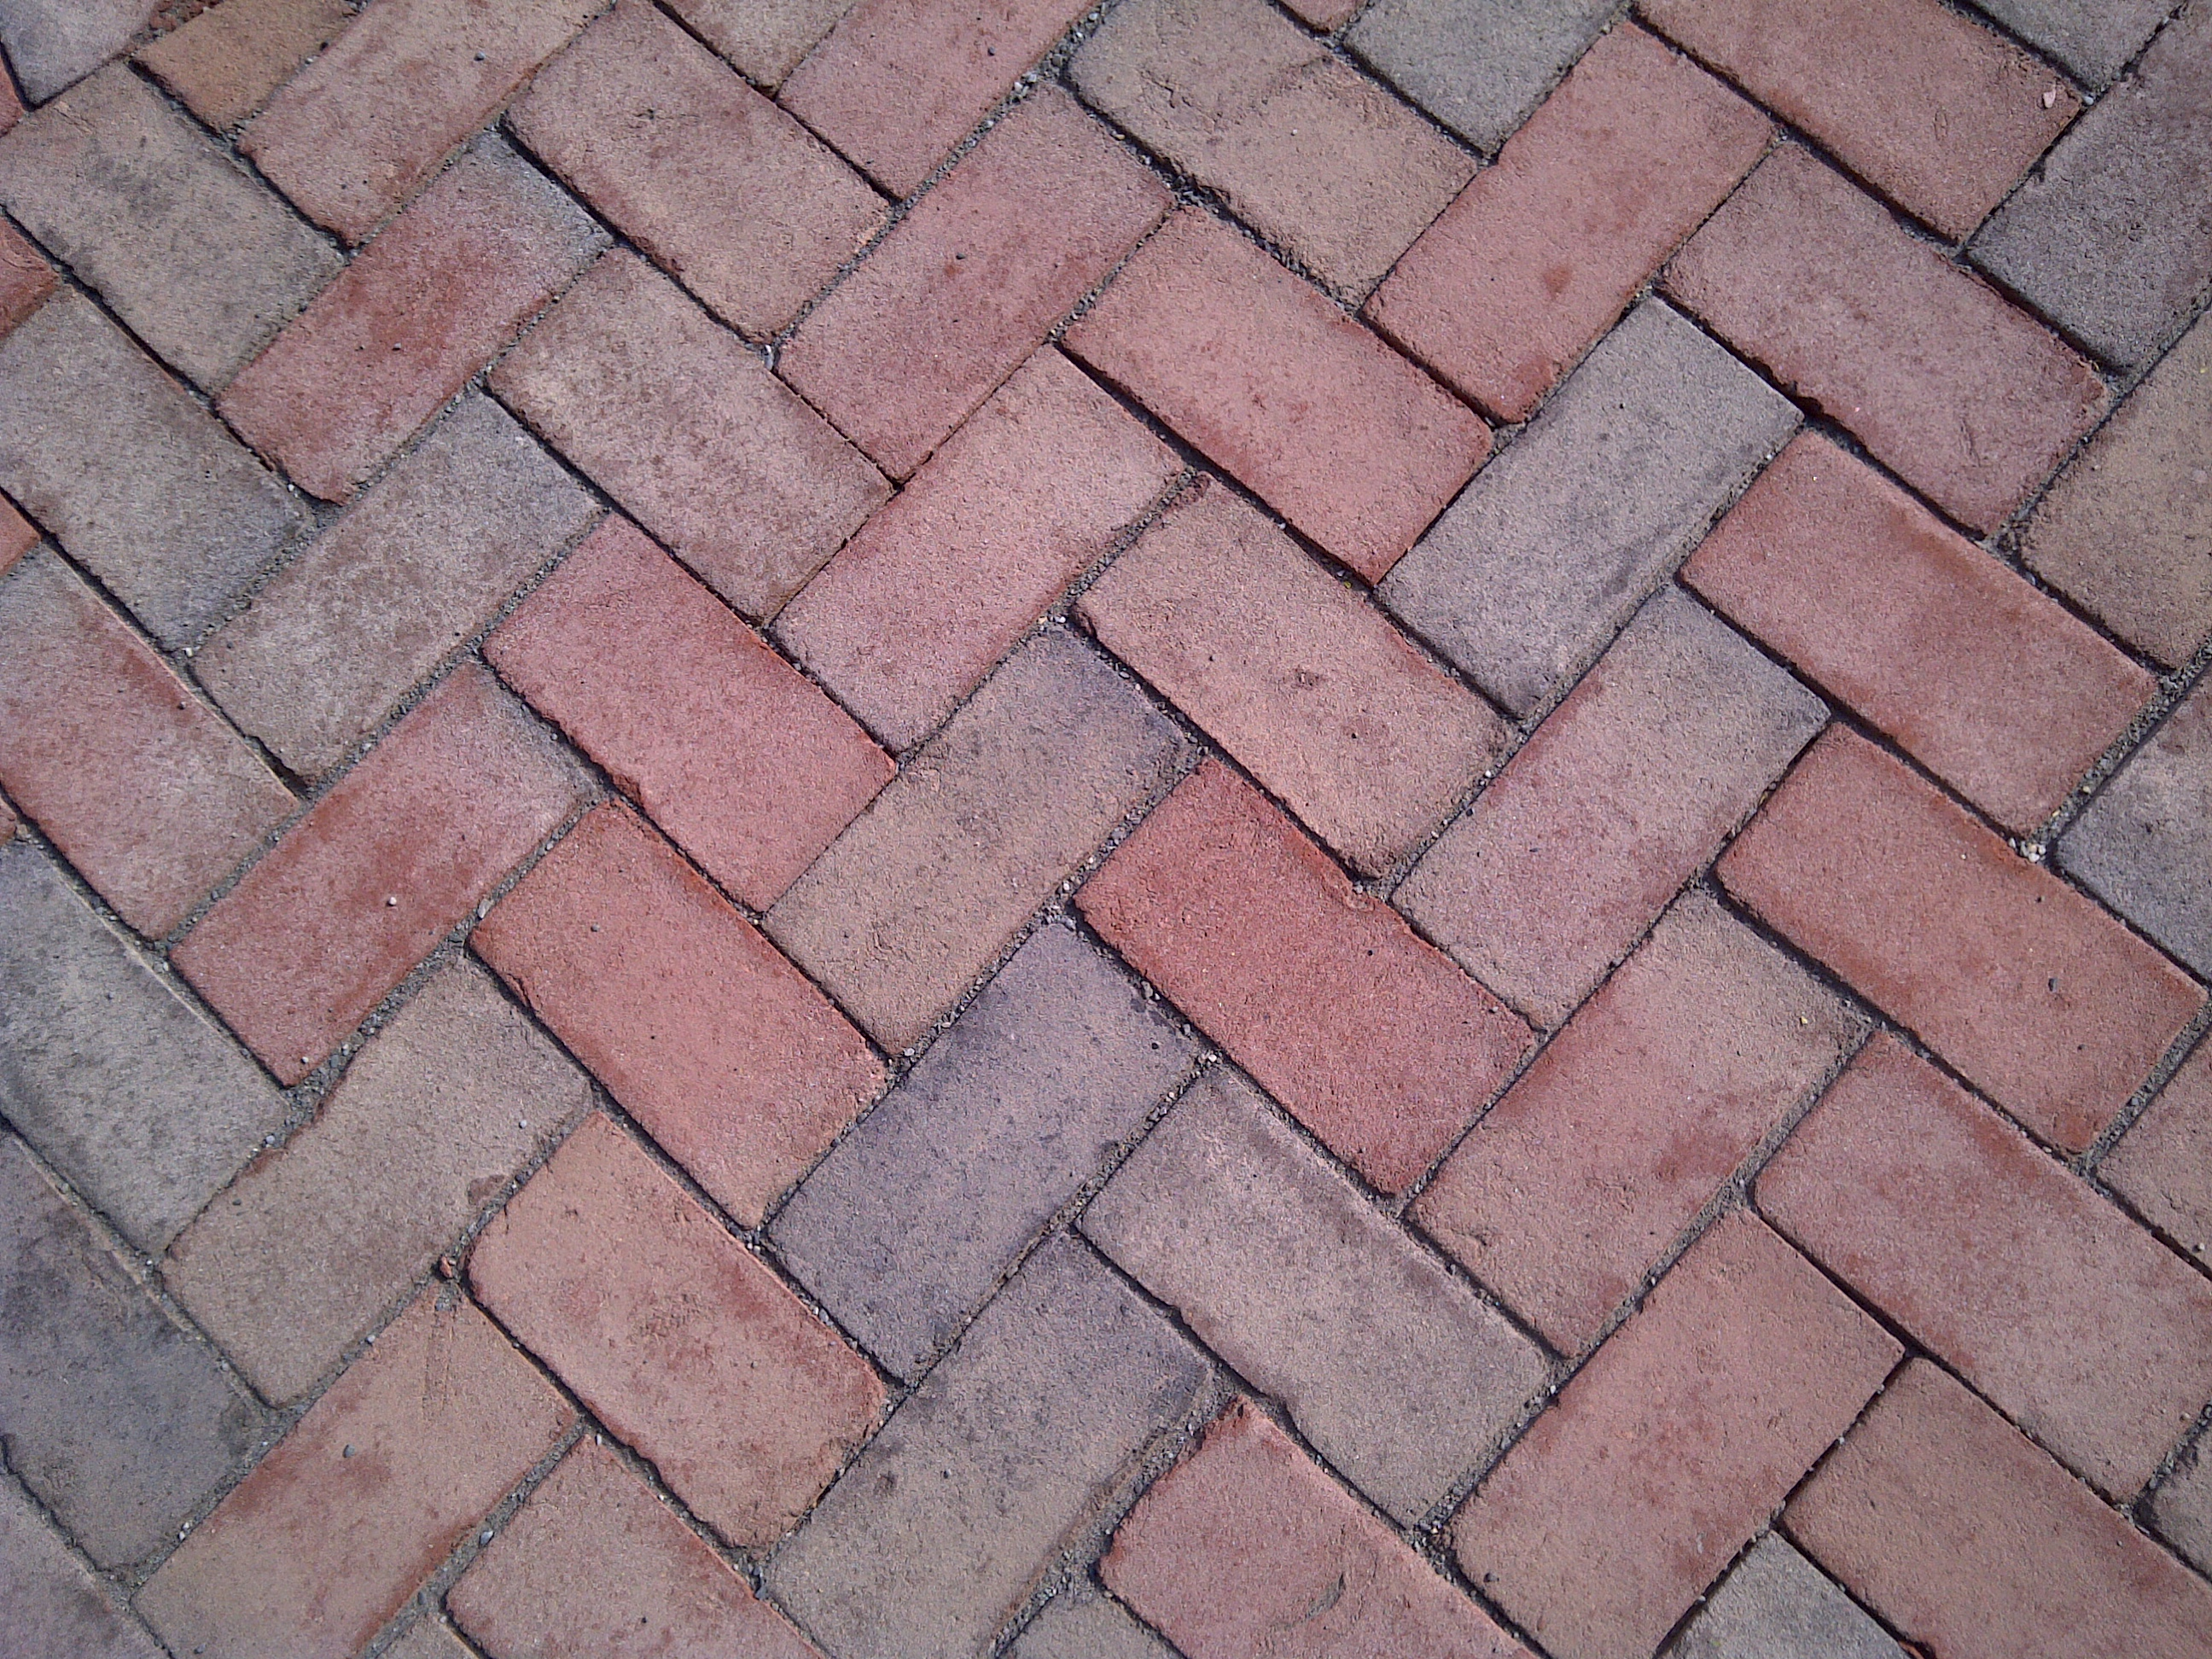 brick pavers for a complete home kcqotyd